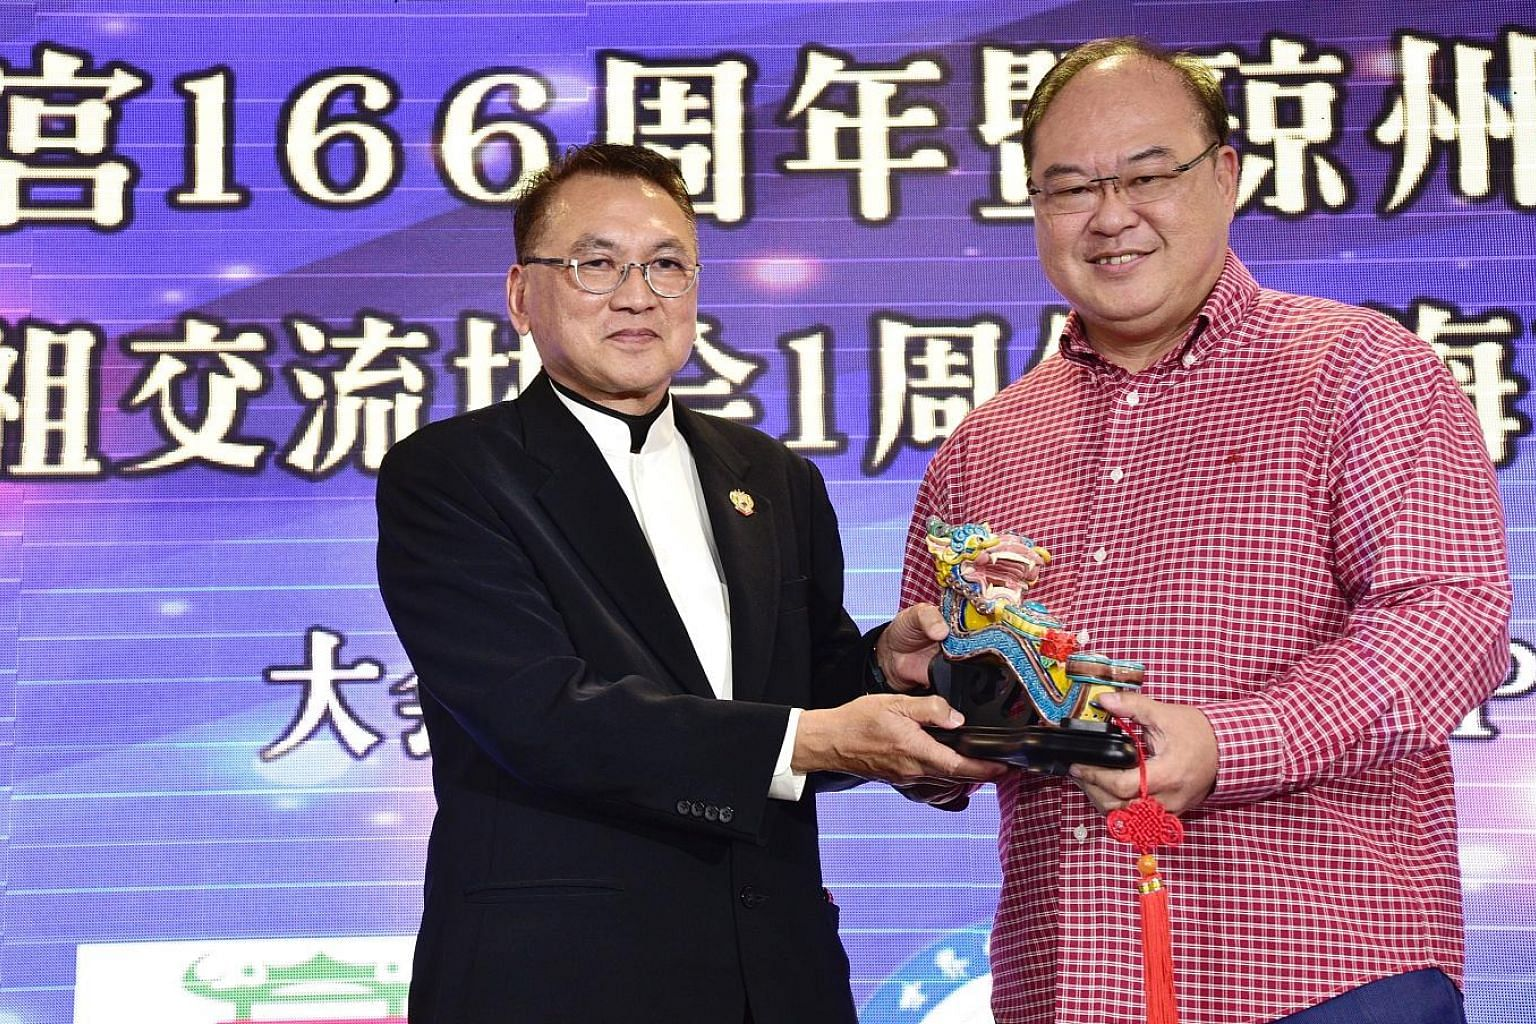 Kheng Chiu Tin Hou Kong and Burial Ground chairman Foo Jong Peng (left) presenting a memento to Mr Tan Aik Hock, president of the Singapore Federation of Chinese Clan Associations, during the launch of the Hainan Federation yesterday.